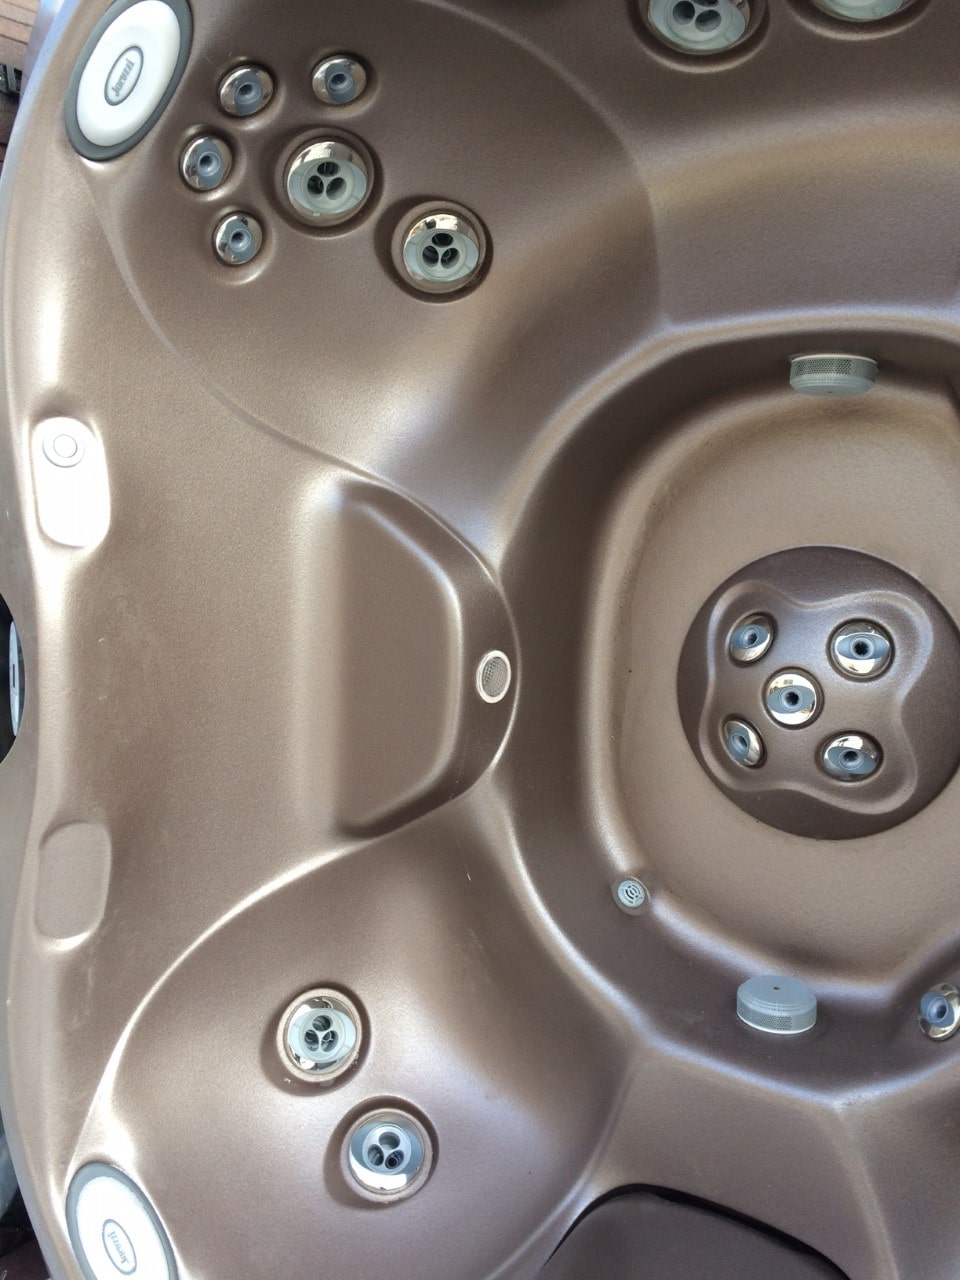 2012 Jacuzzi J-365 in Excellent Condition